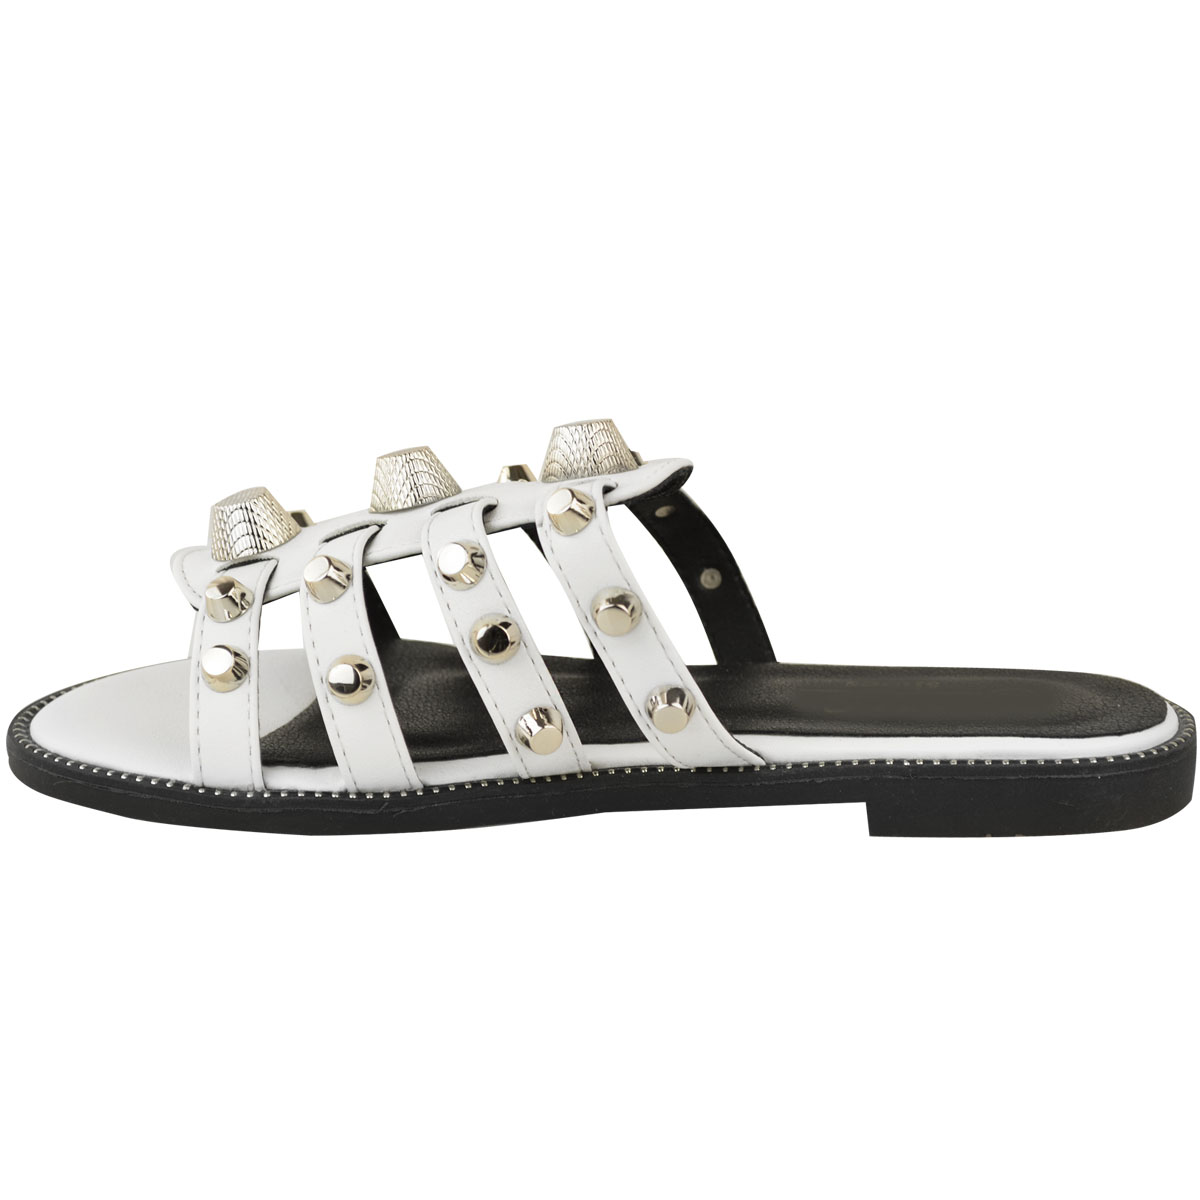 96a33a38c335 New Womens Ladies Giant Gold Studded Faux Leather Slides Summer ...